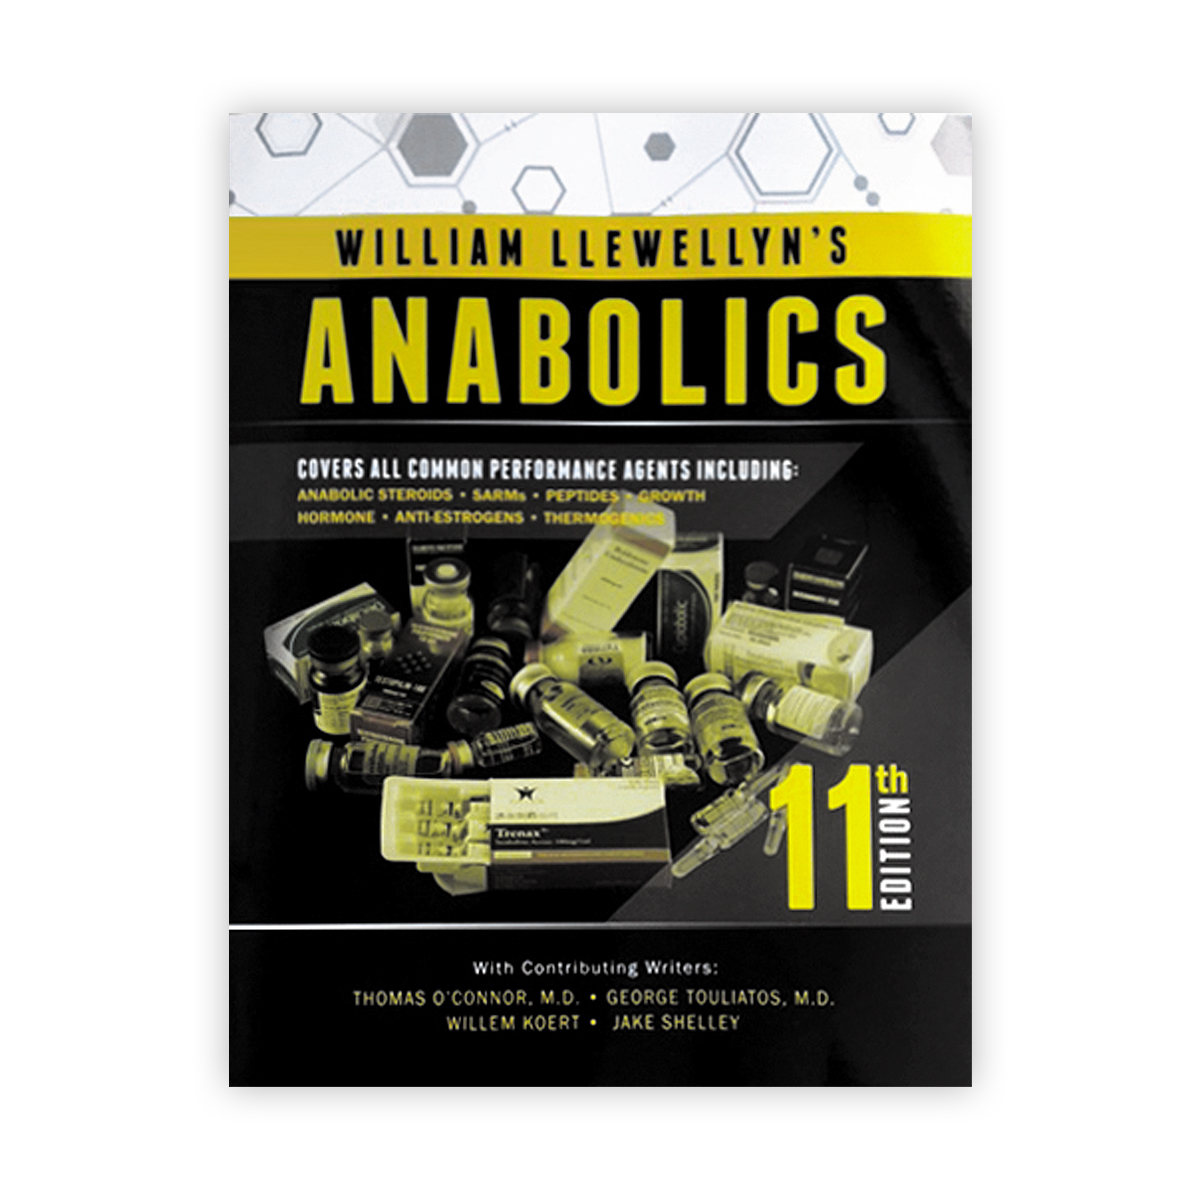 Anabolics 11th Edition by William Llewellyn